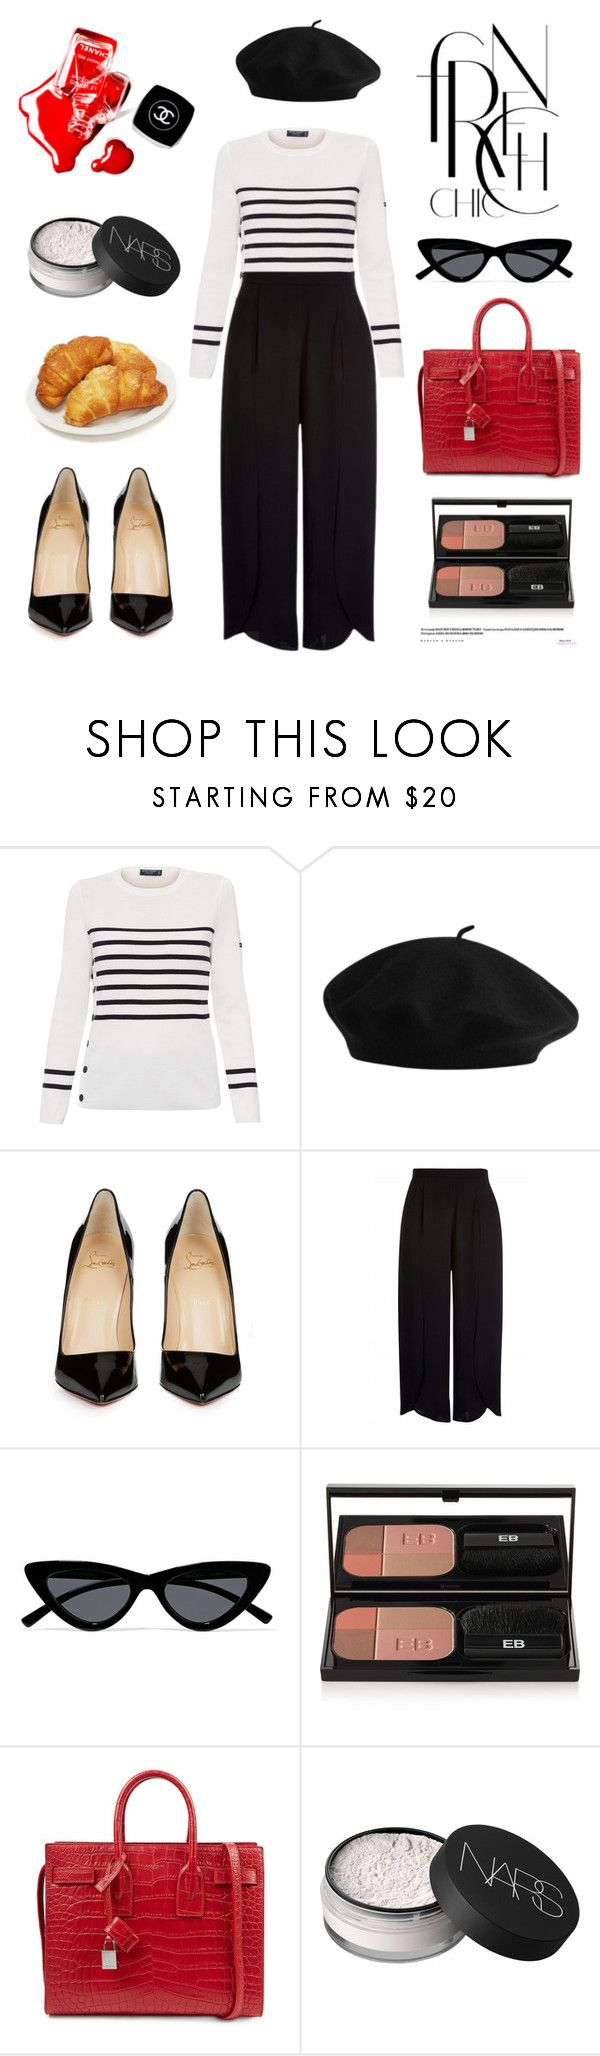 """""""Untitled #695"""" by tenindvr ❤ liked on Polyvore featuring Saint James, Christian Louboutin, Le Specs, Edward Bess, Yves Saint Laurent, NARS Cosmetics and Chanel"""